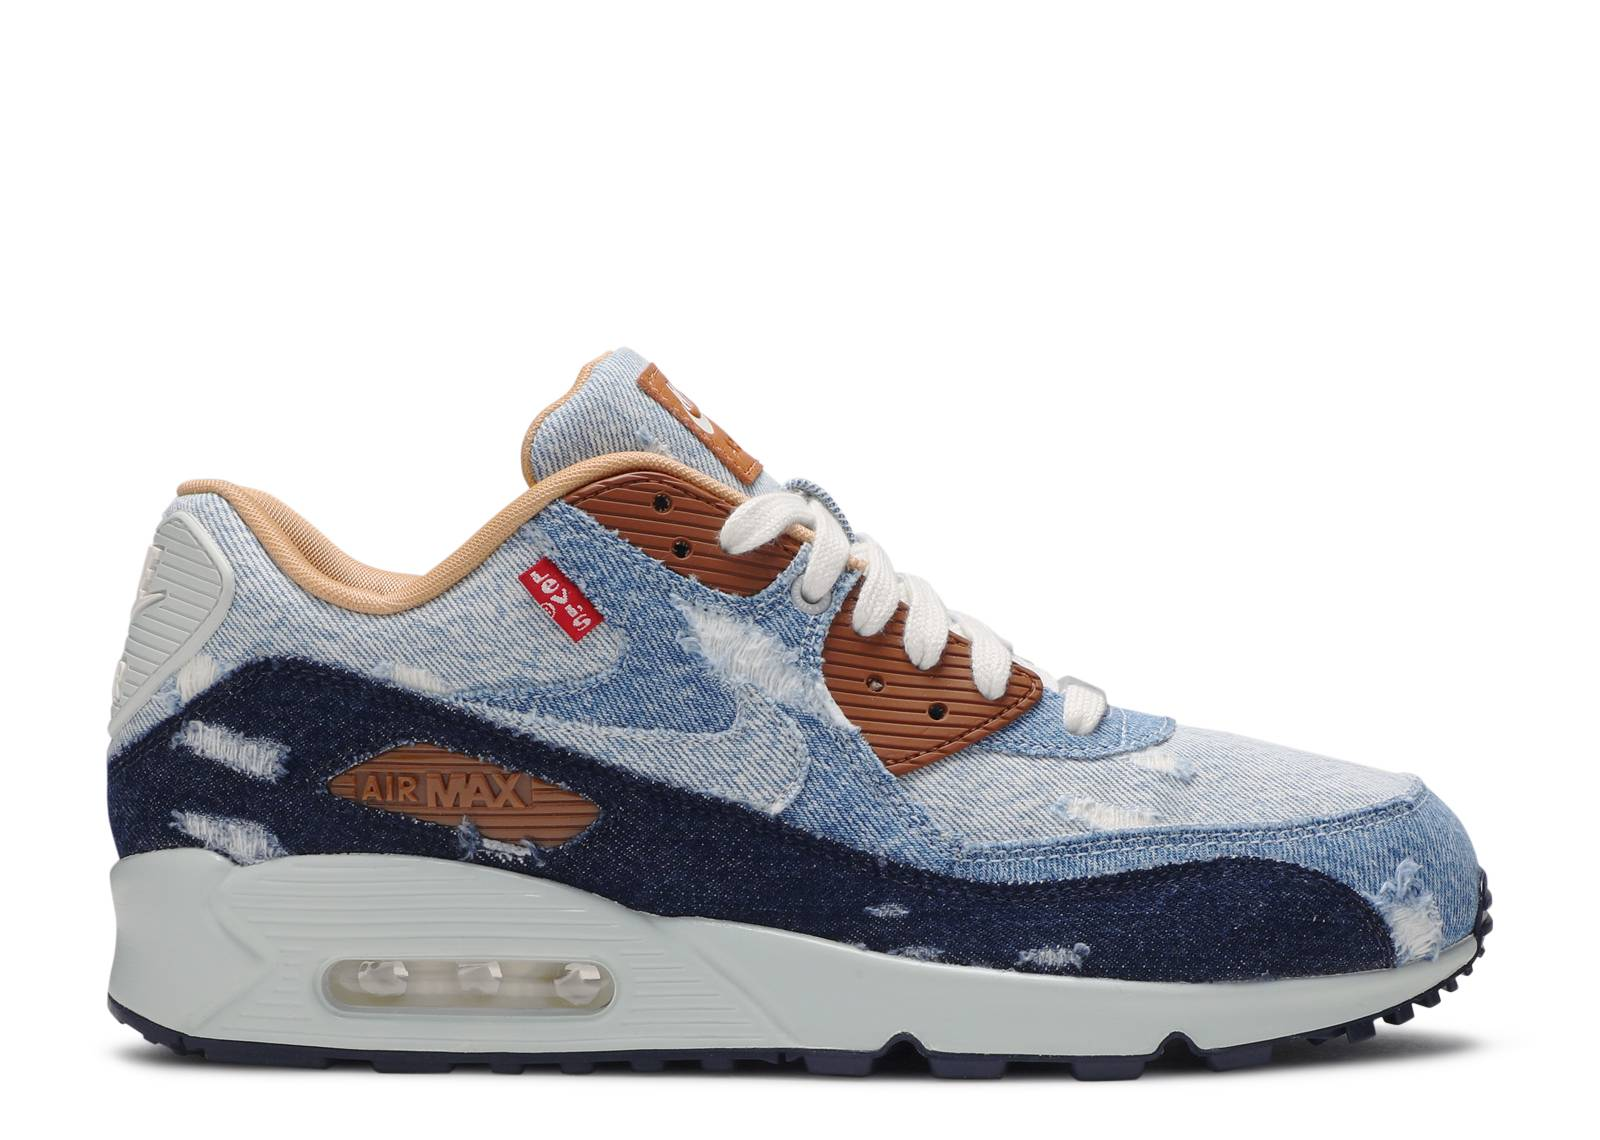 Pence colateral Entender  Levi's X Air Max 90 'Nike By You' - Nike - 708279 988 - multi-color |  Flight Club